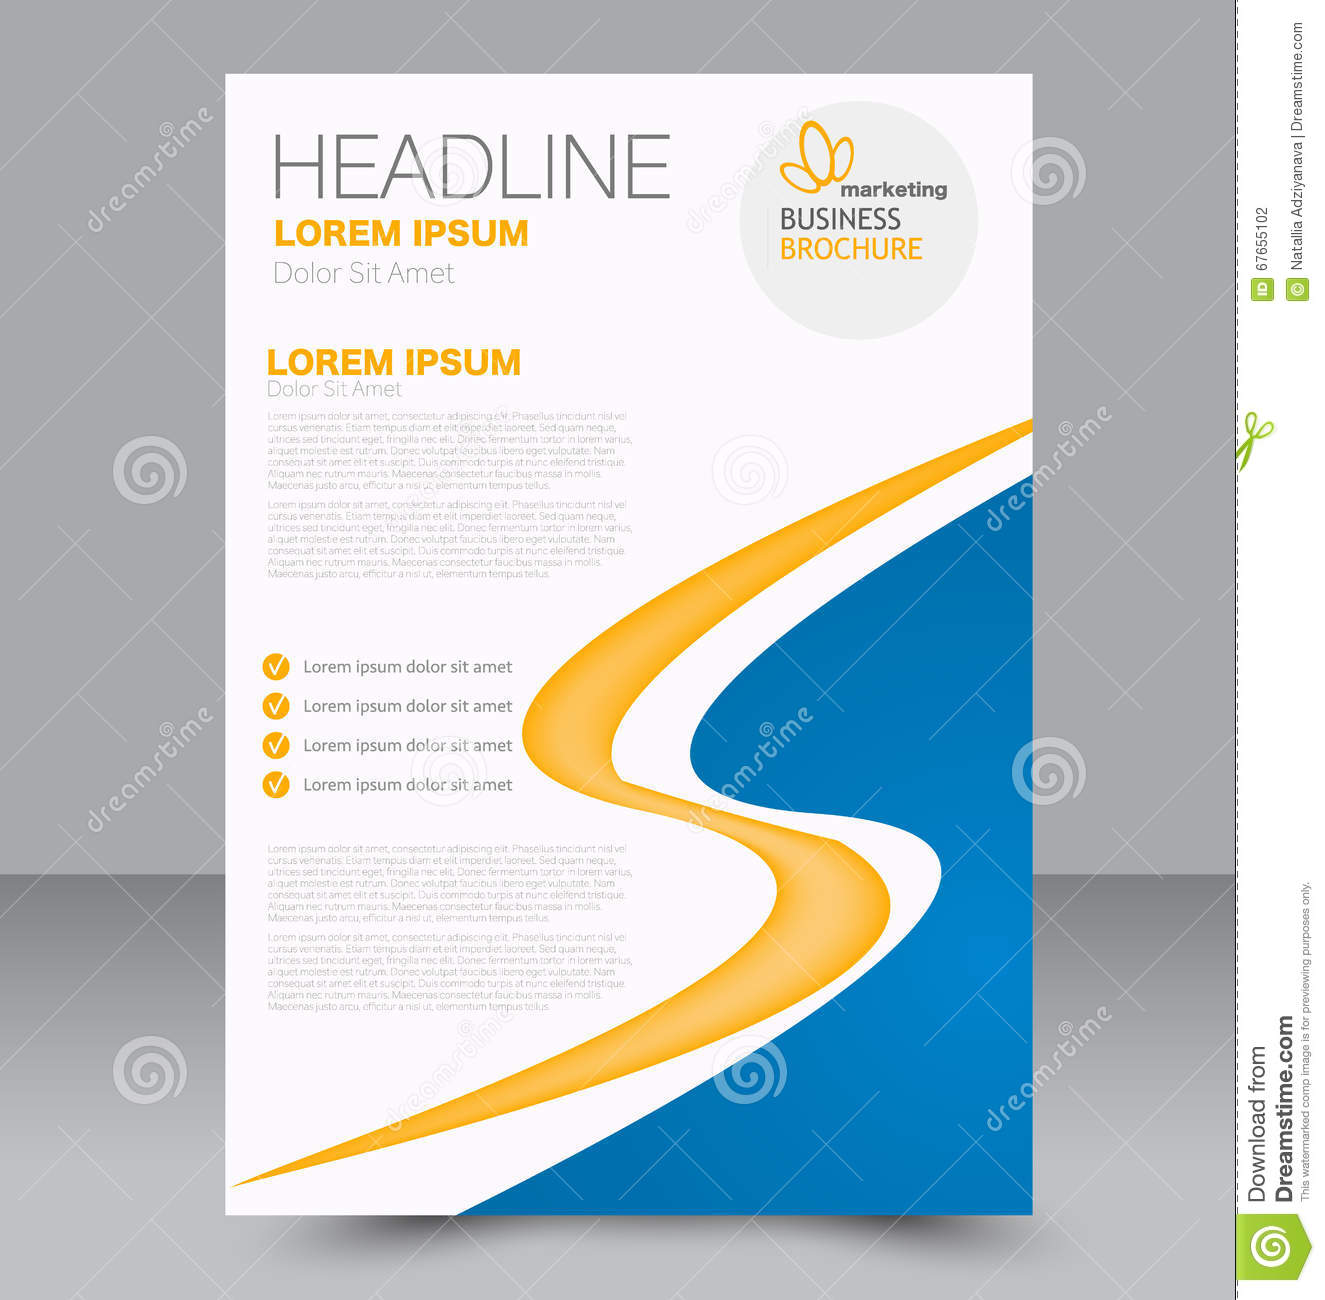 brochure background templates - abstract flyer design background brochure template stock